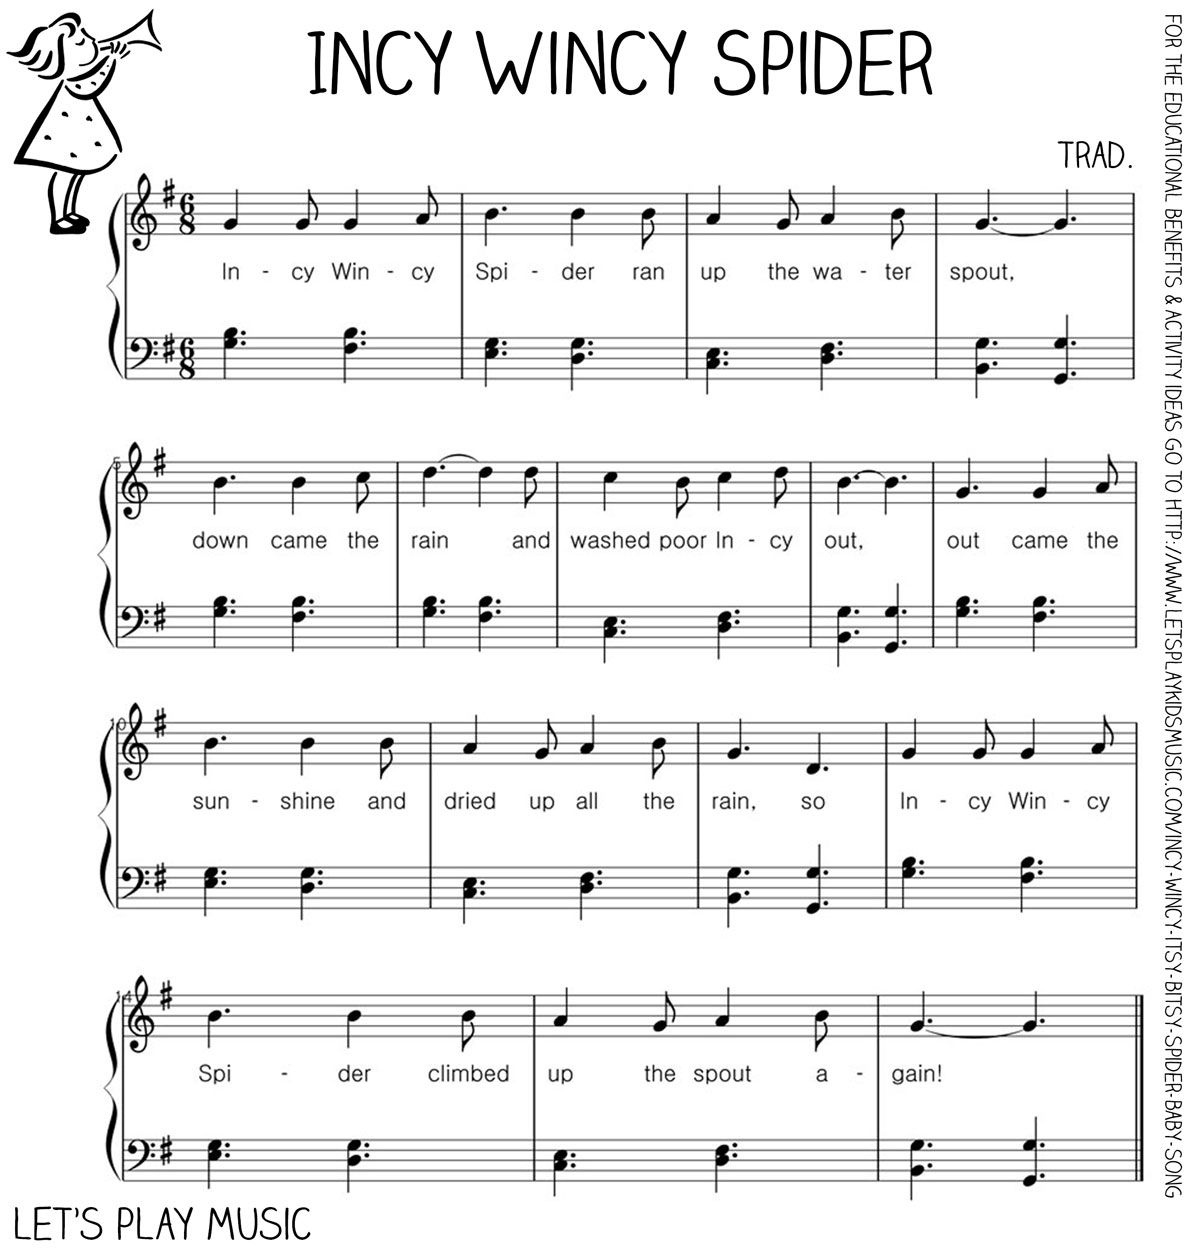 Grenade Free Piano Sheet Music With Lyrics: Incy Wincy Spider : First Nursery Rhymes